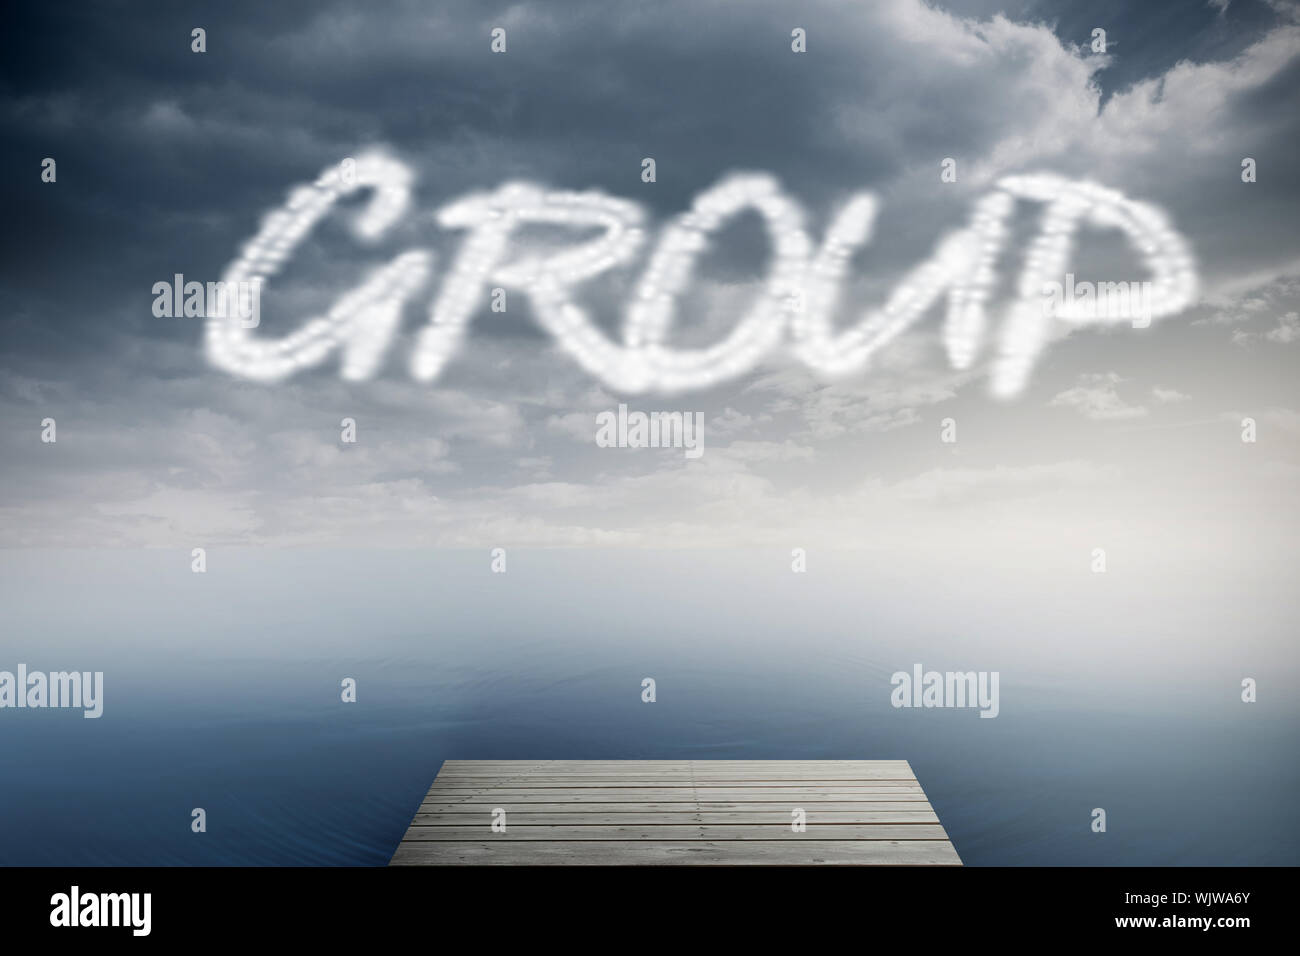 The word group against cloudy sky over ocean Stock Photo